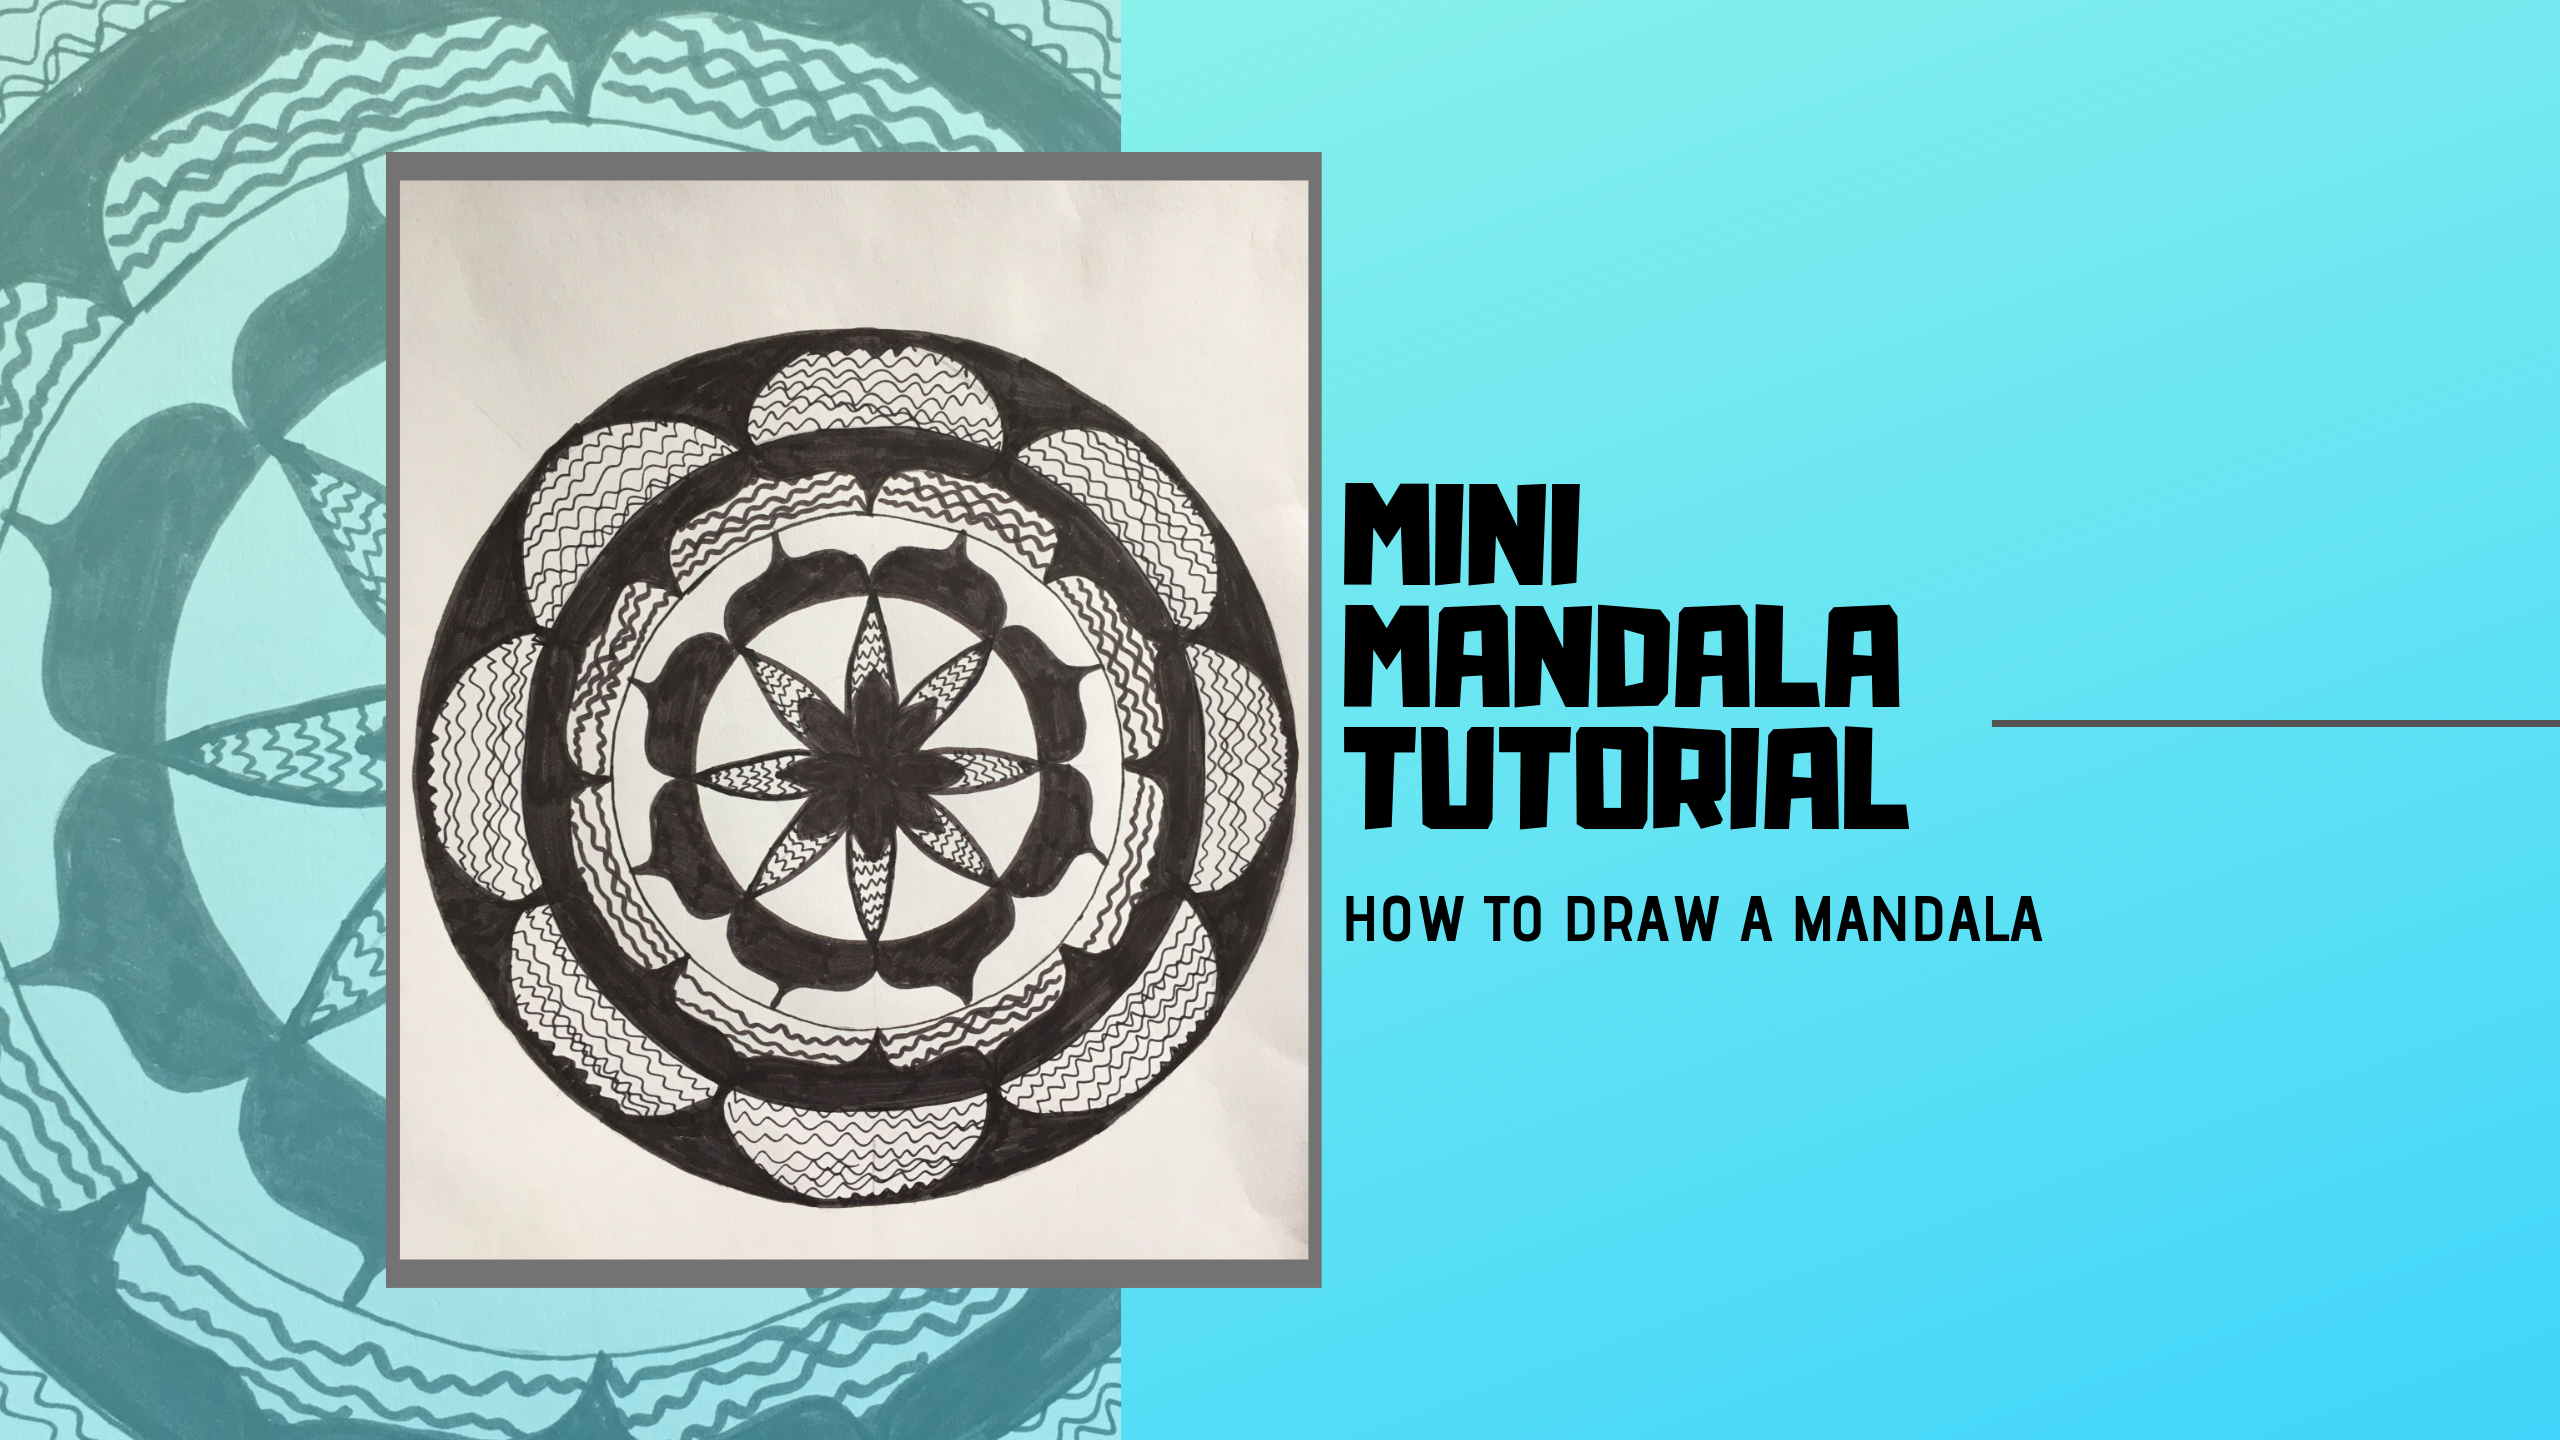 Mini Mandala Video Tutorial for Beginner- 1,5 hours of content to teach you a structured method how to make your first simple DIY MANDALA. The course is completely free